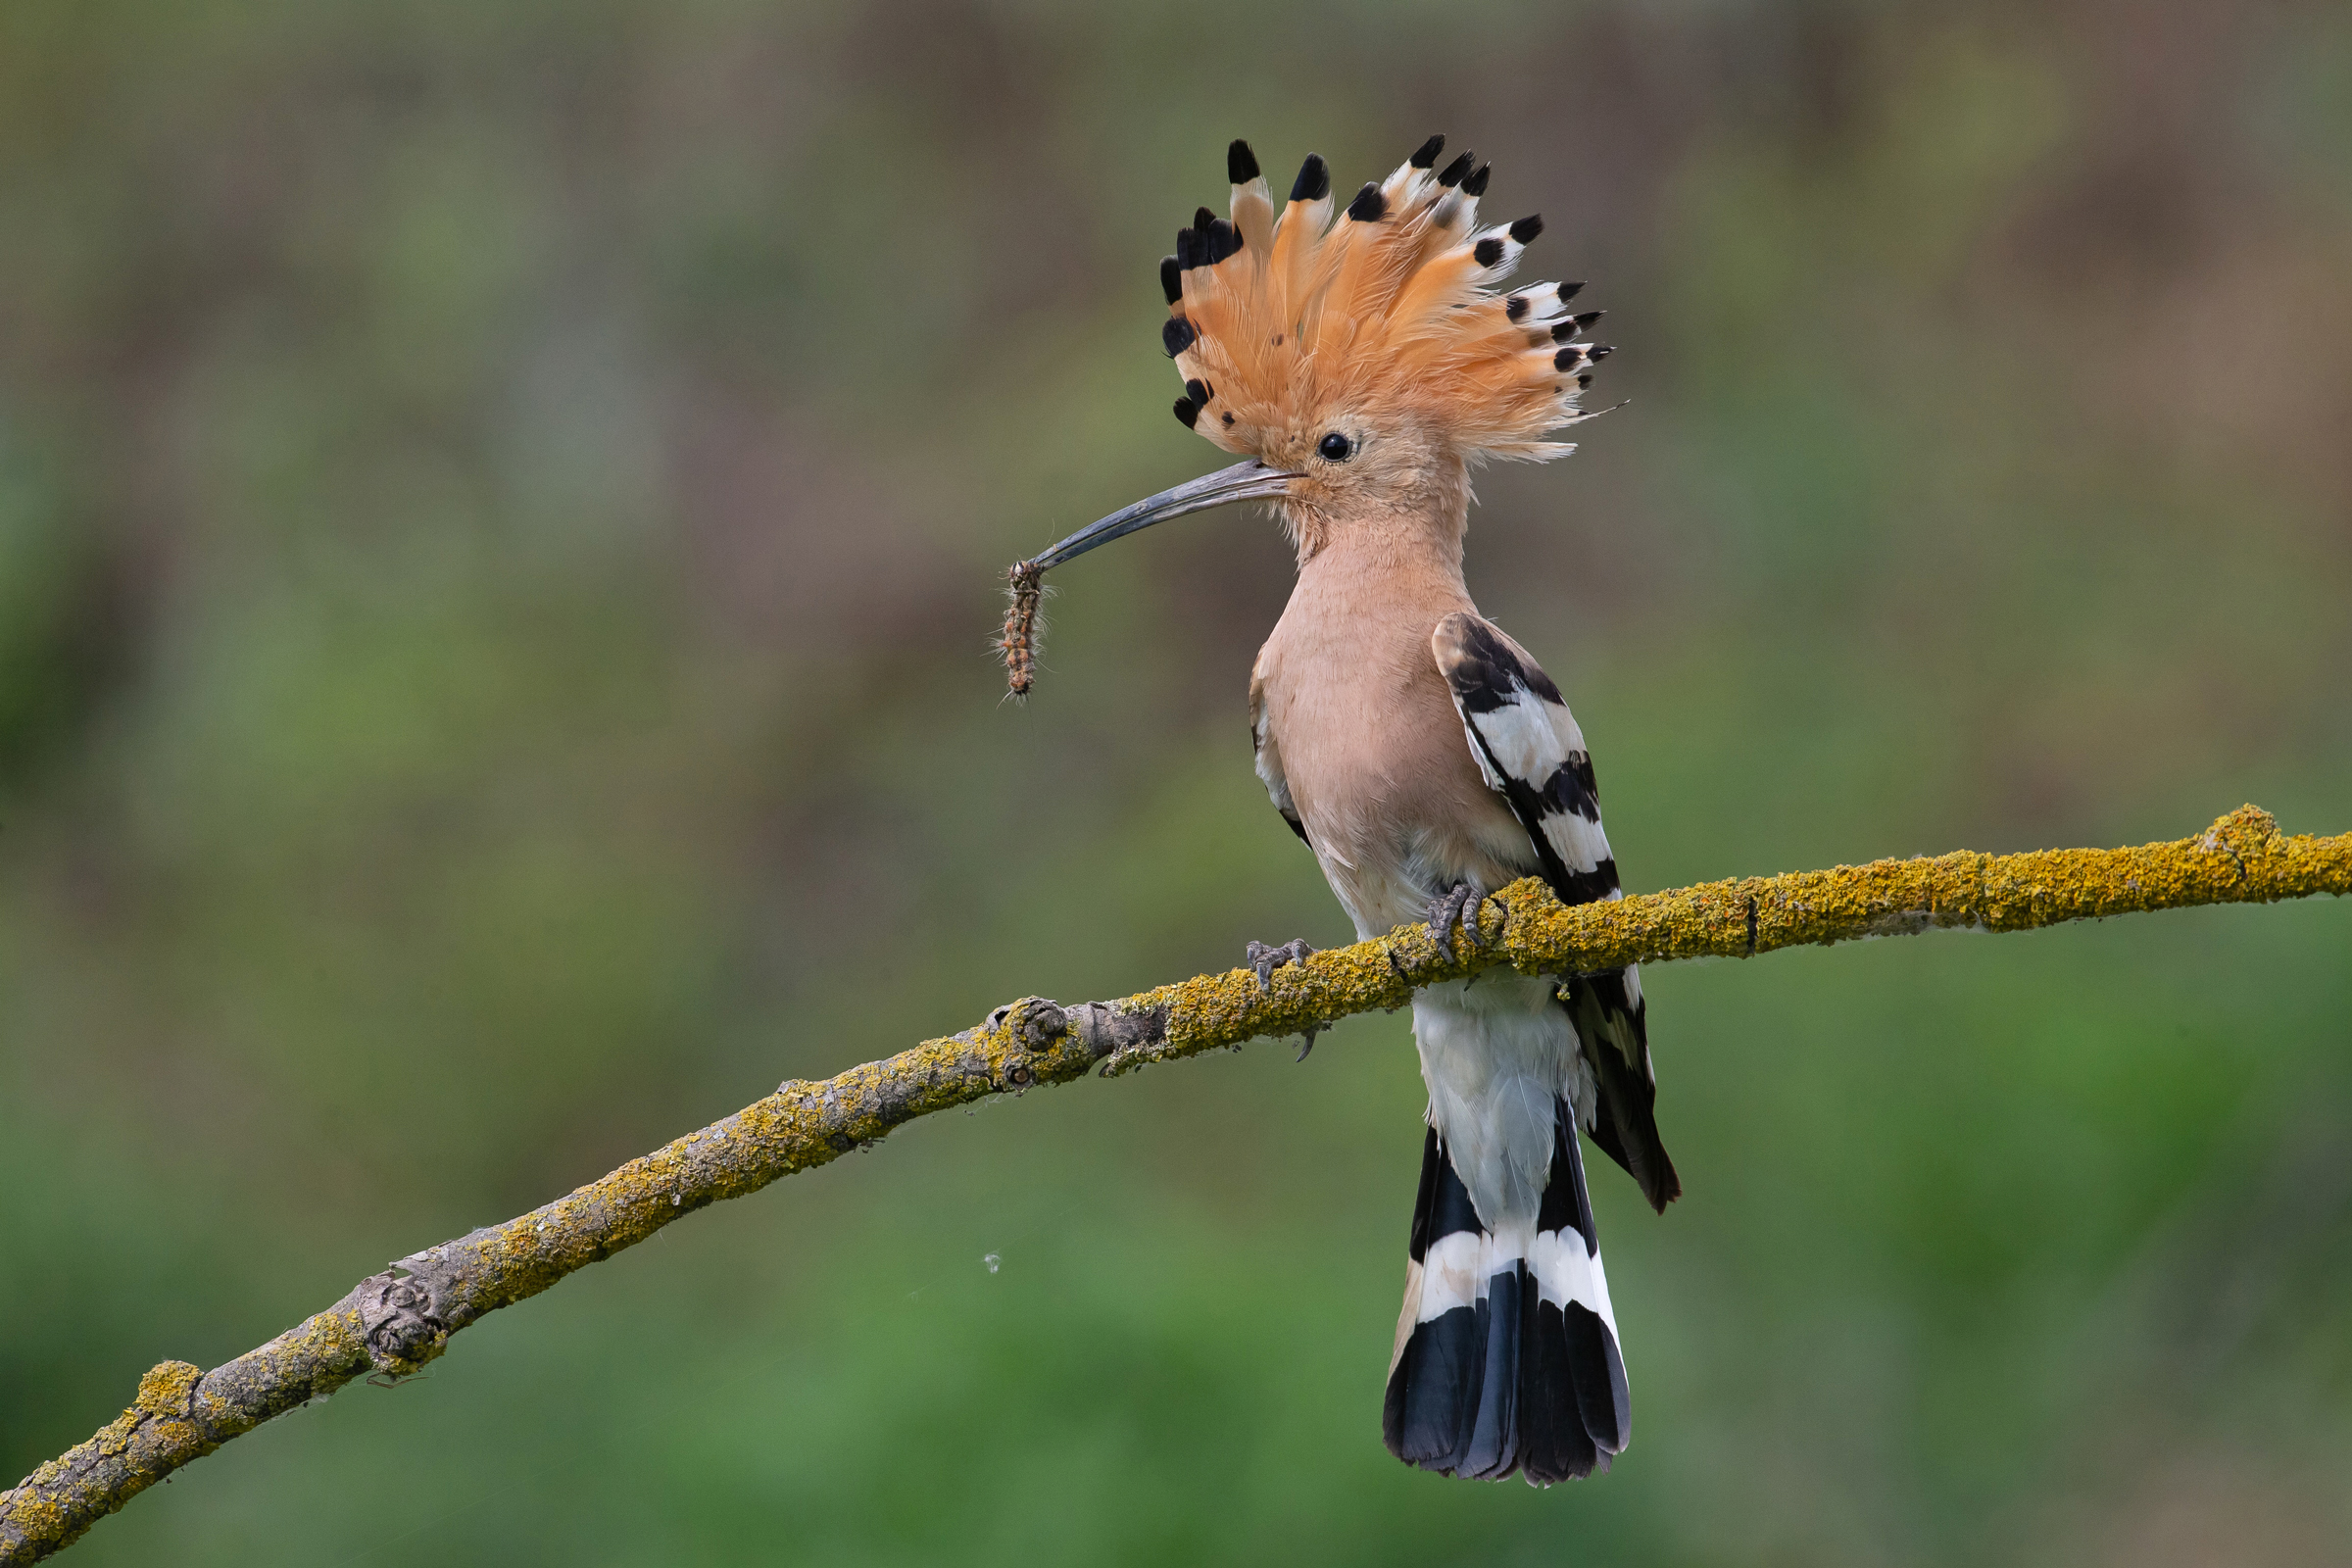 Eurasian Hoopoes are feeding well grown young by late May